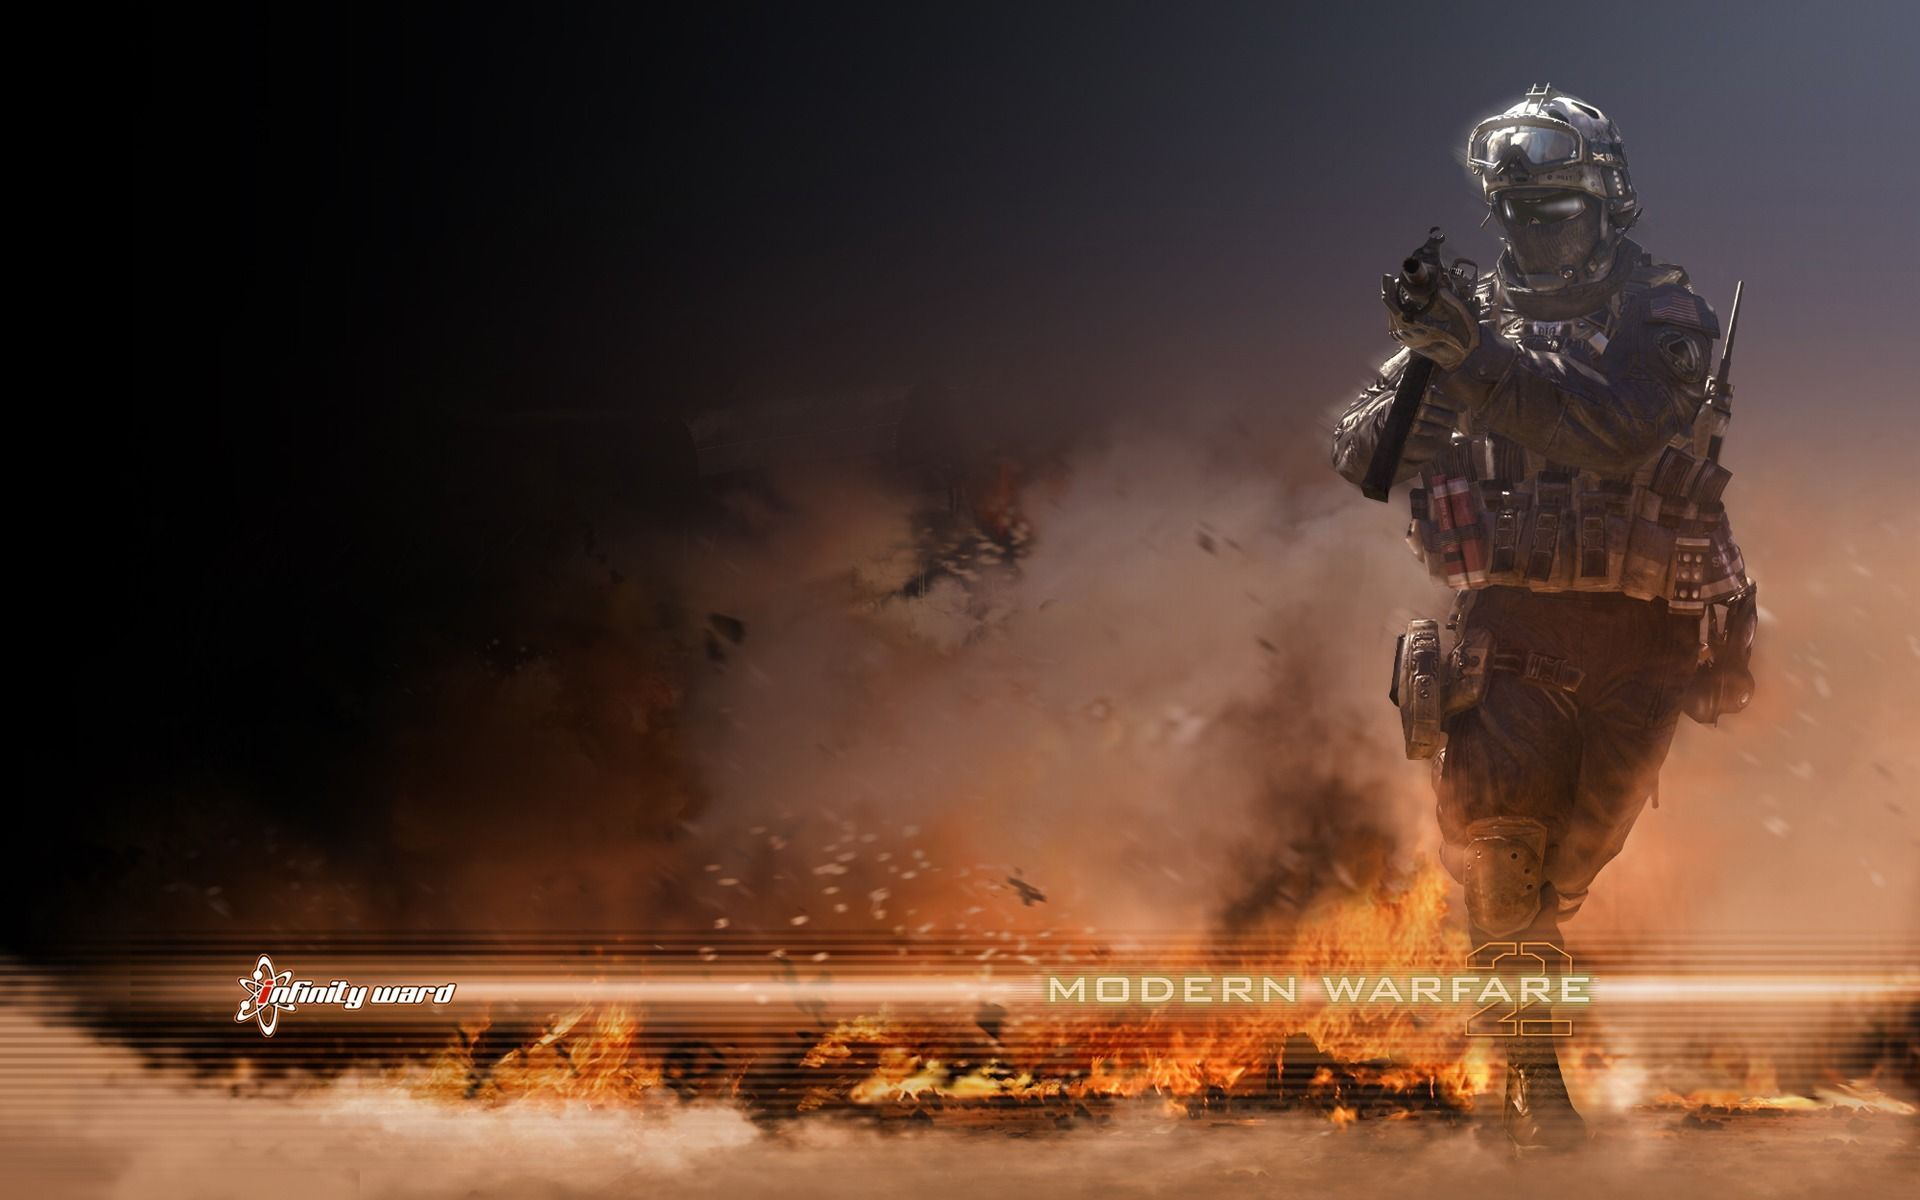 3d Wallpaper Call Of Duty Wallpapers For Free Download About